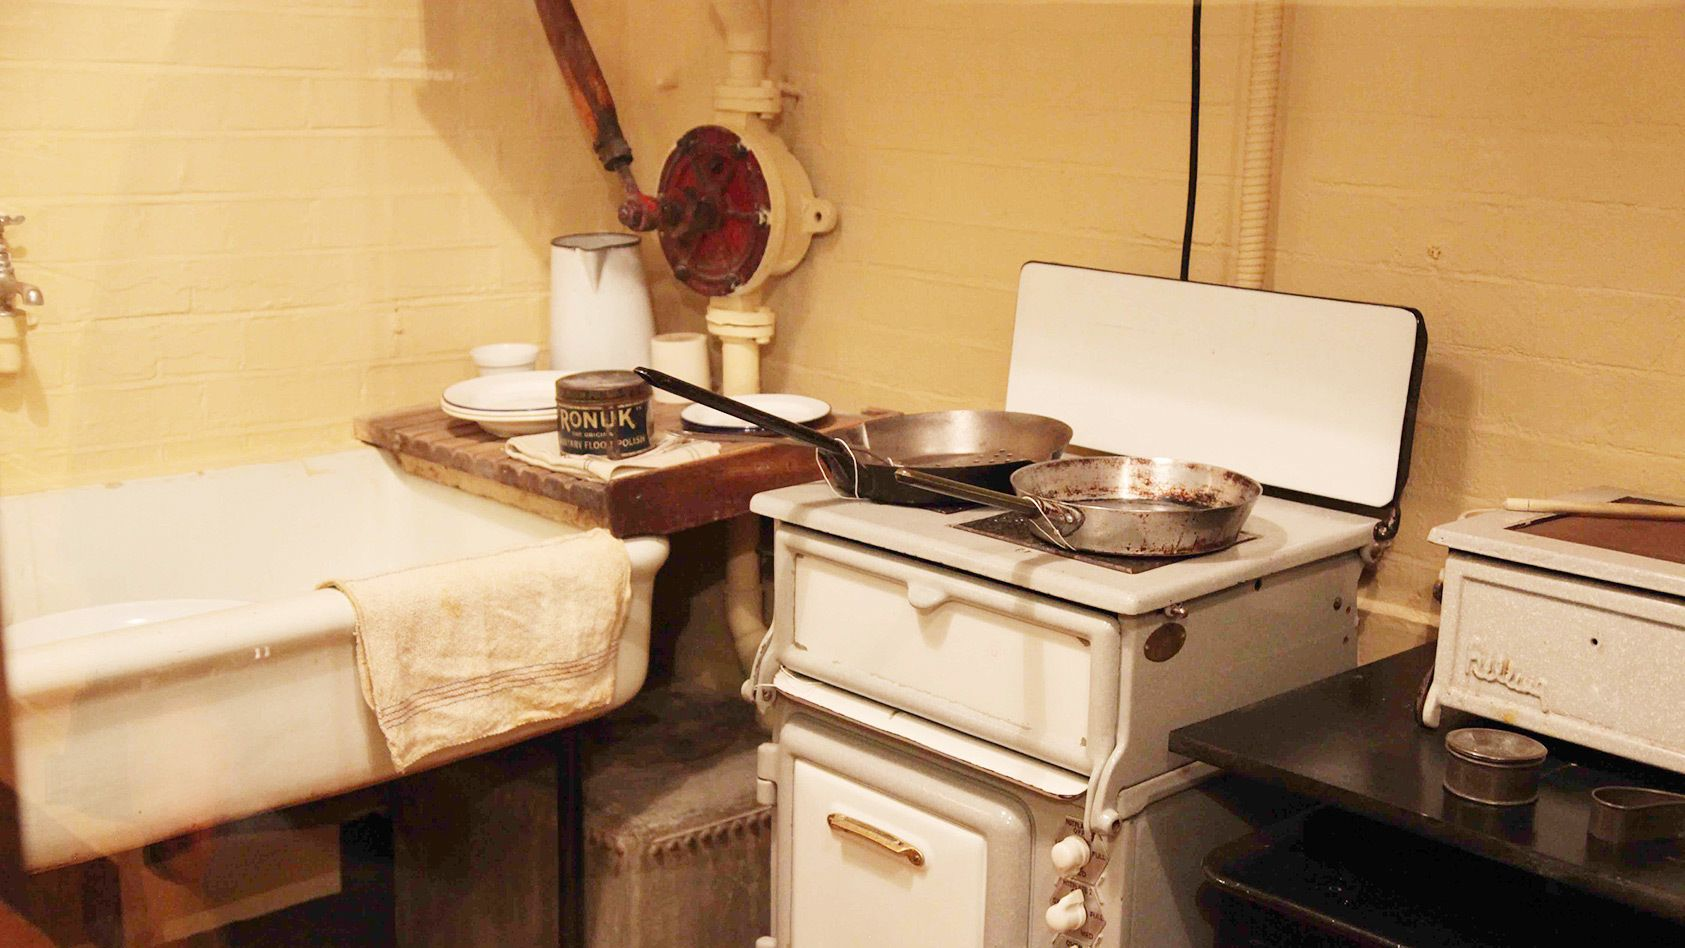 small kitchenette at the Churchhill War Room museum in London